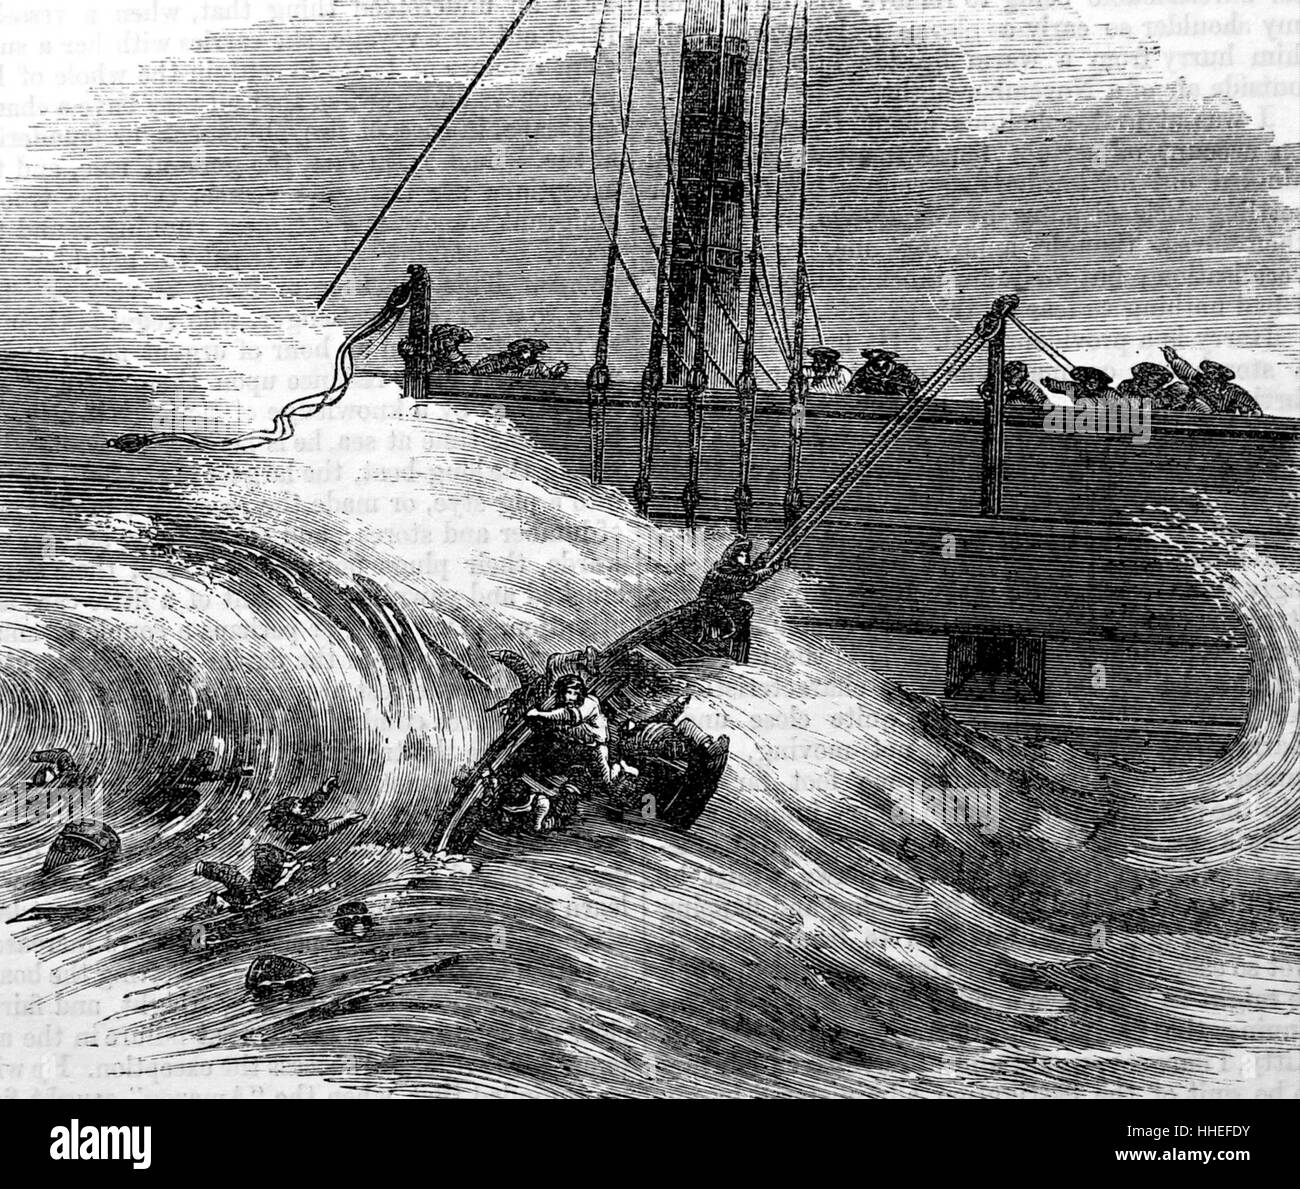 Illustration depicting a lifeboat capsizing because of difficulty of lowering from the boat. Dated 19th Century - Stock Image